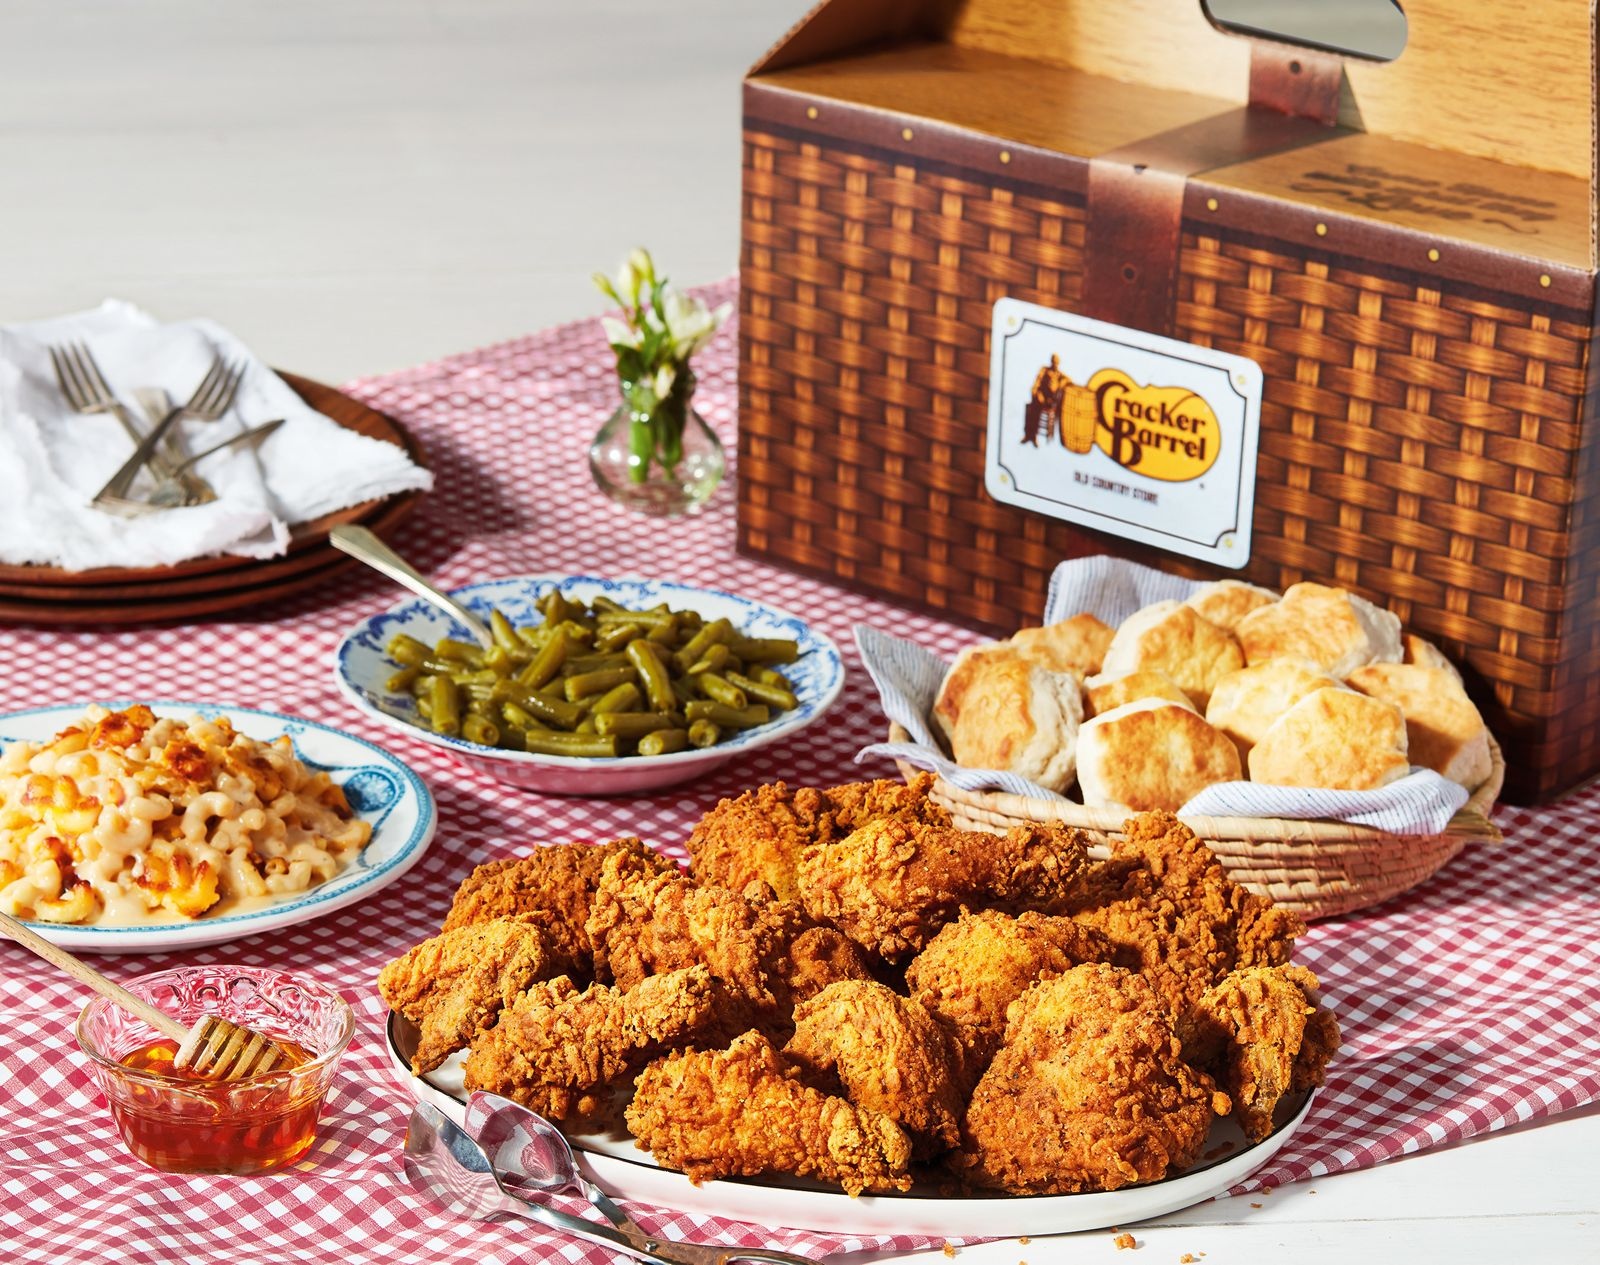 To Celebrate 50 Years, Cracker Barrel Old Country Store Releases Southern Fried Chicken